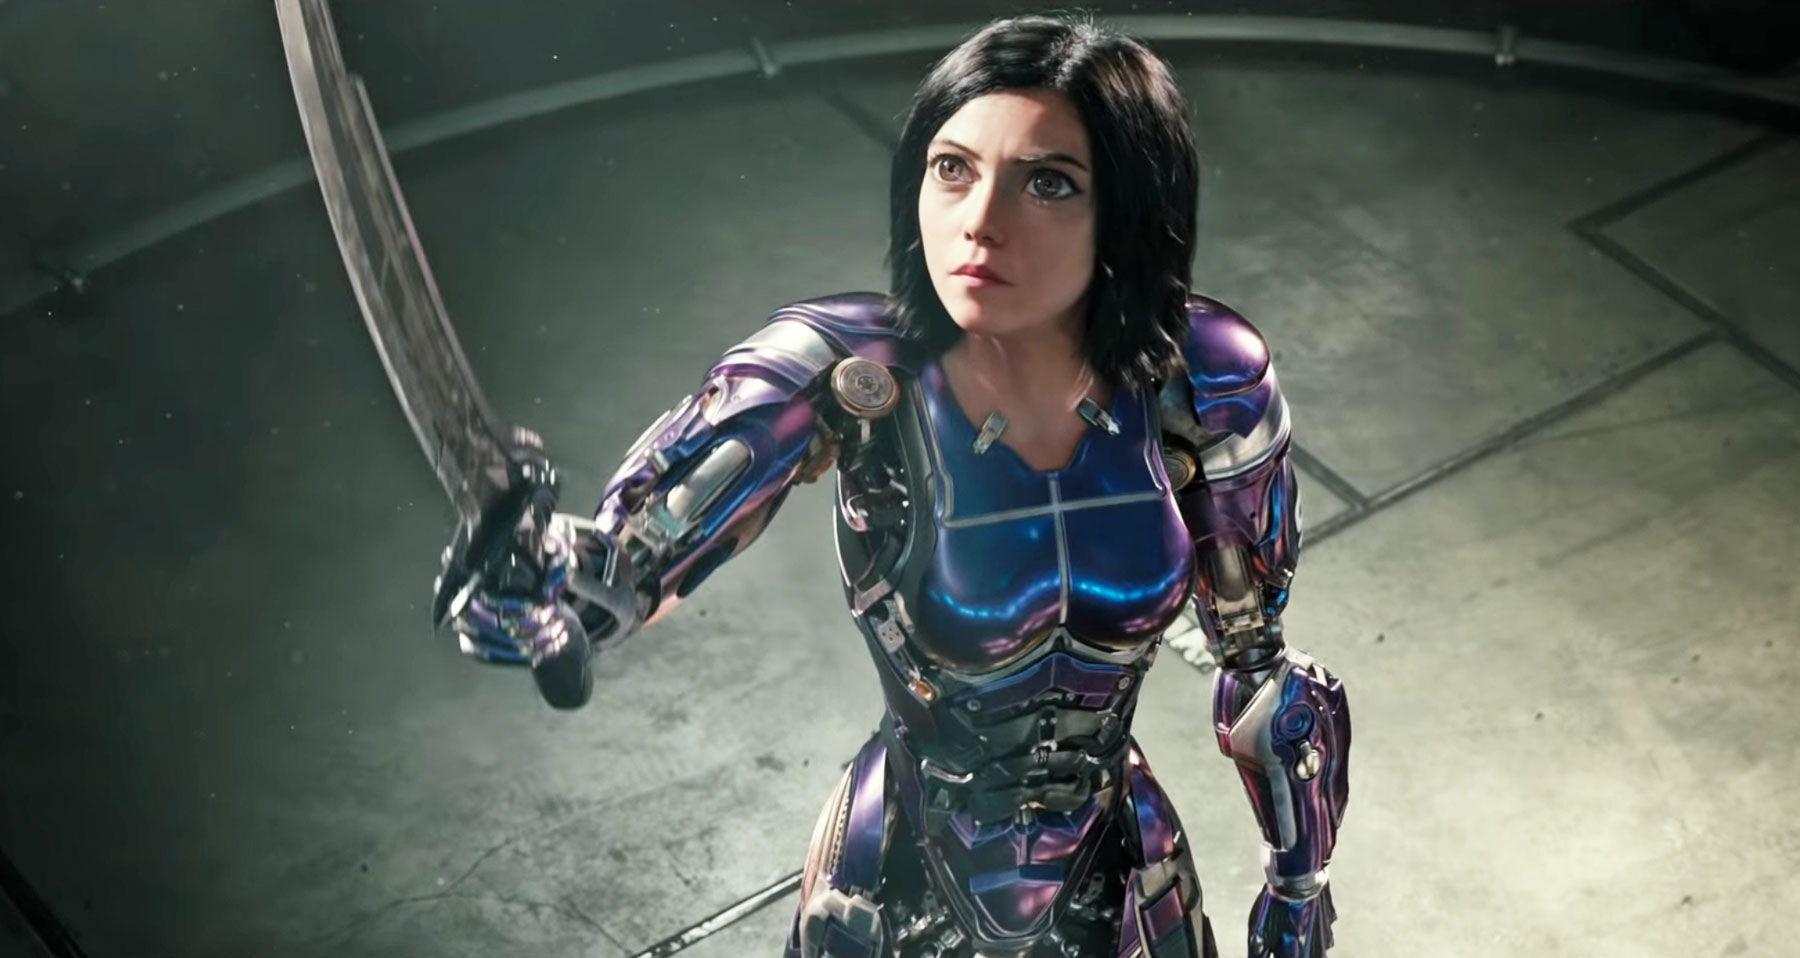 Review Film Alita Battle Angel, Perjuangan Alita Tuk Hancurkan Zalem